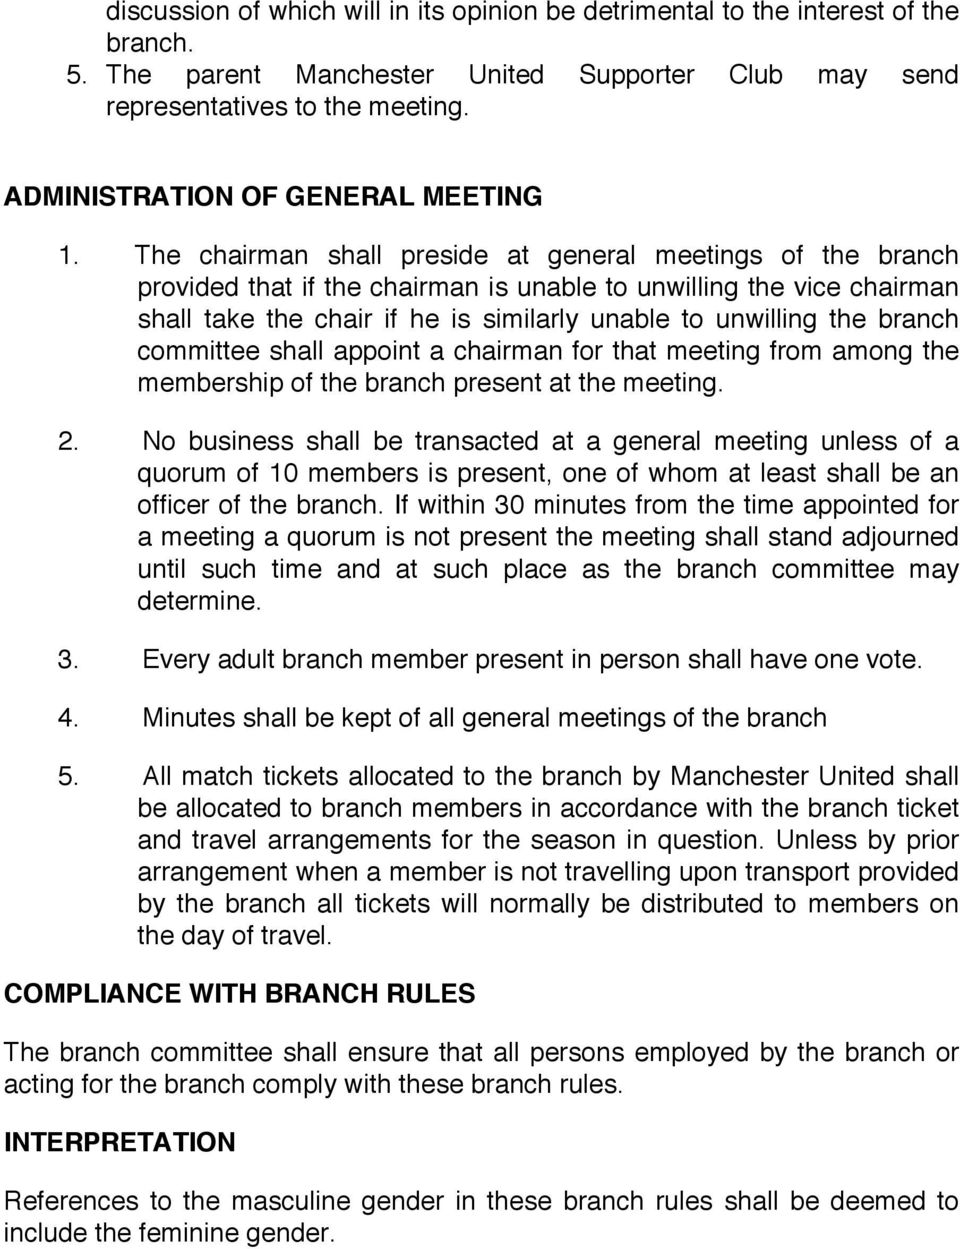 The chairman shall preside at general meetings of the branch provided that if the chairman is unable to unwilling the vice chairman shall take the chair if he is similarly unable to unwilling the